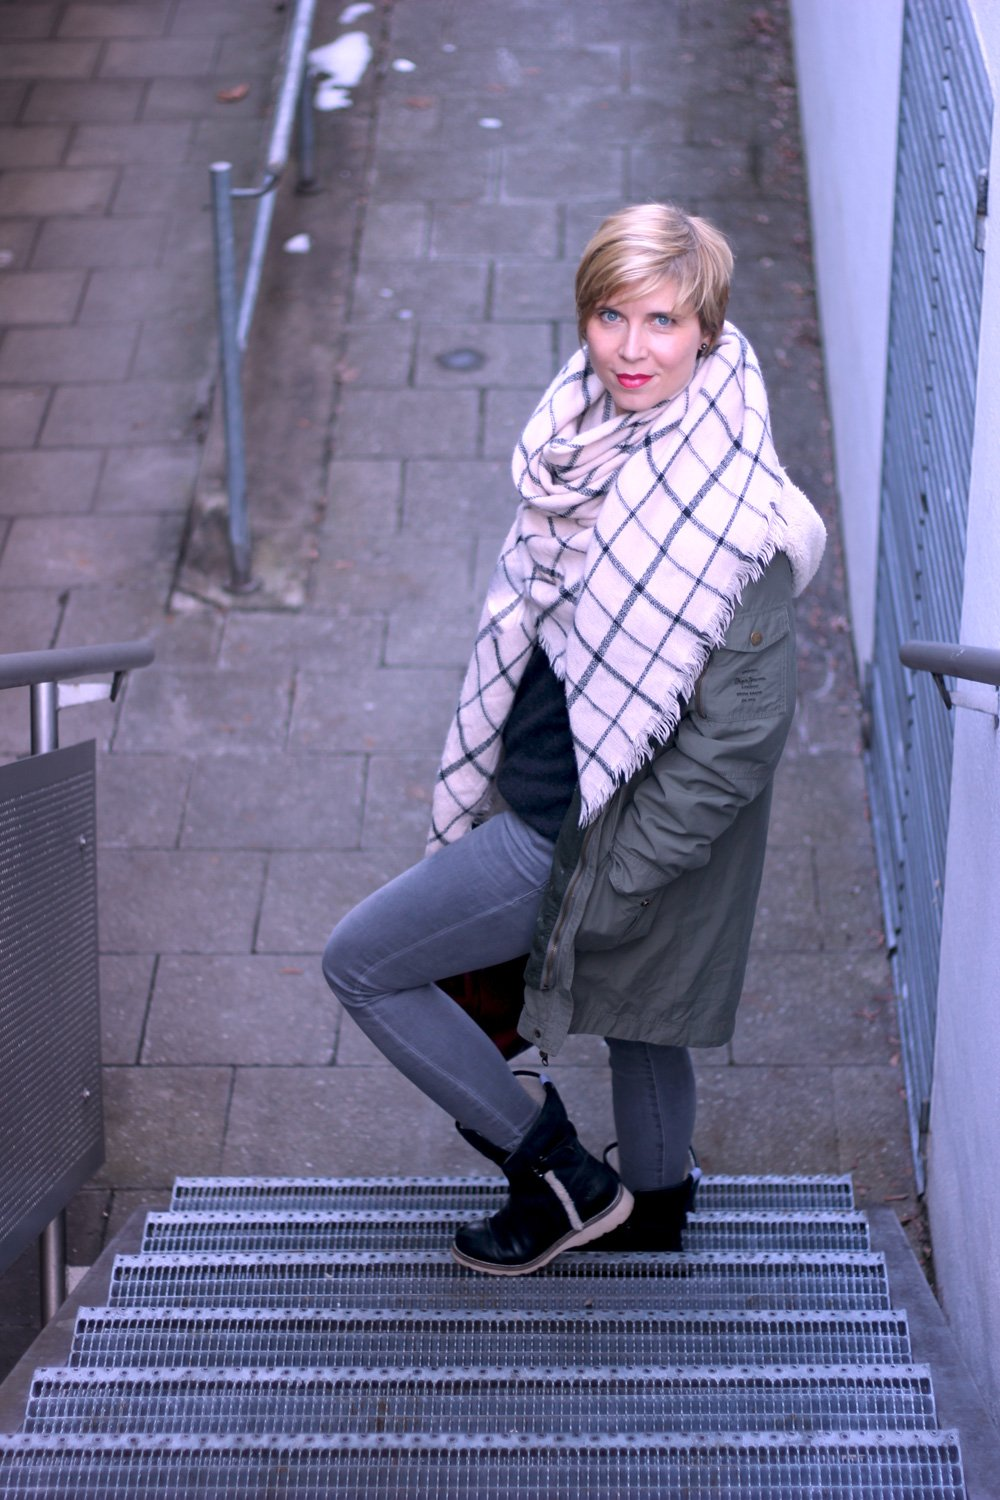 Schluppenbluse und Boyfriendpullover, Conny Doll, Skinny, grau, casual, Conny Doll, Münchenblogger, Styleblogger, Outfitblogger, Tchibo, Parka, Pepejeans, Michael Kors, Marcopolo, Skinny, Schal, Winterlook